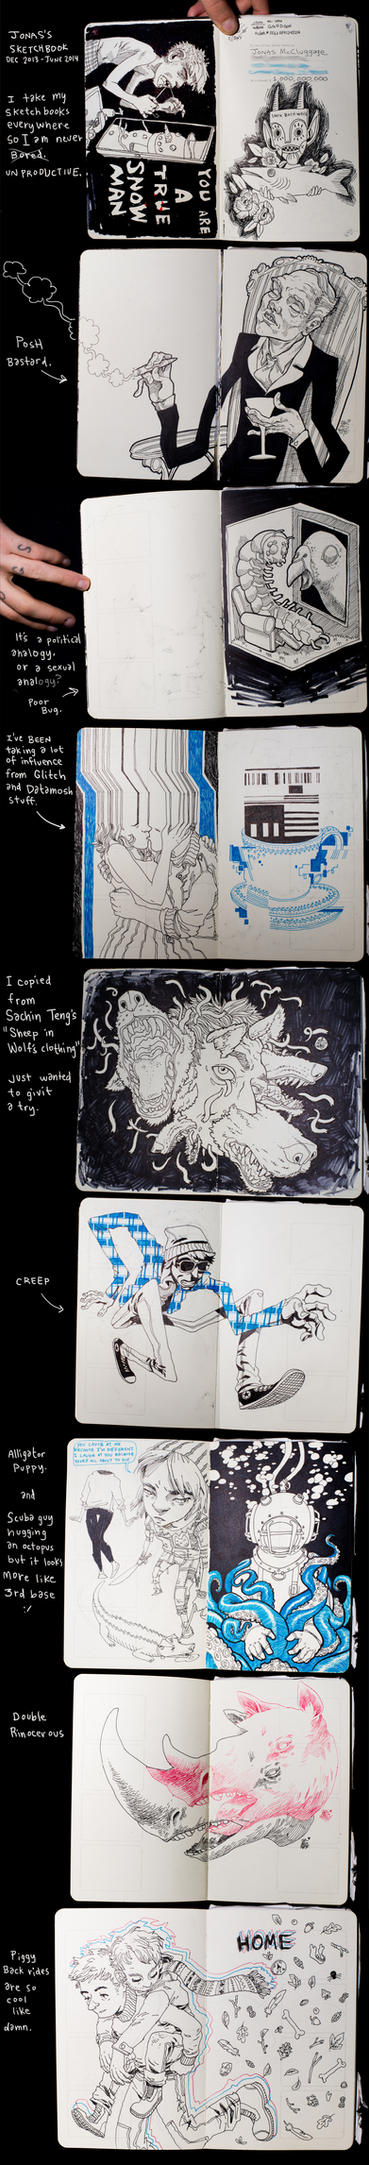 Moleskin sketches by jonasGOONFACE